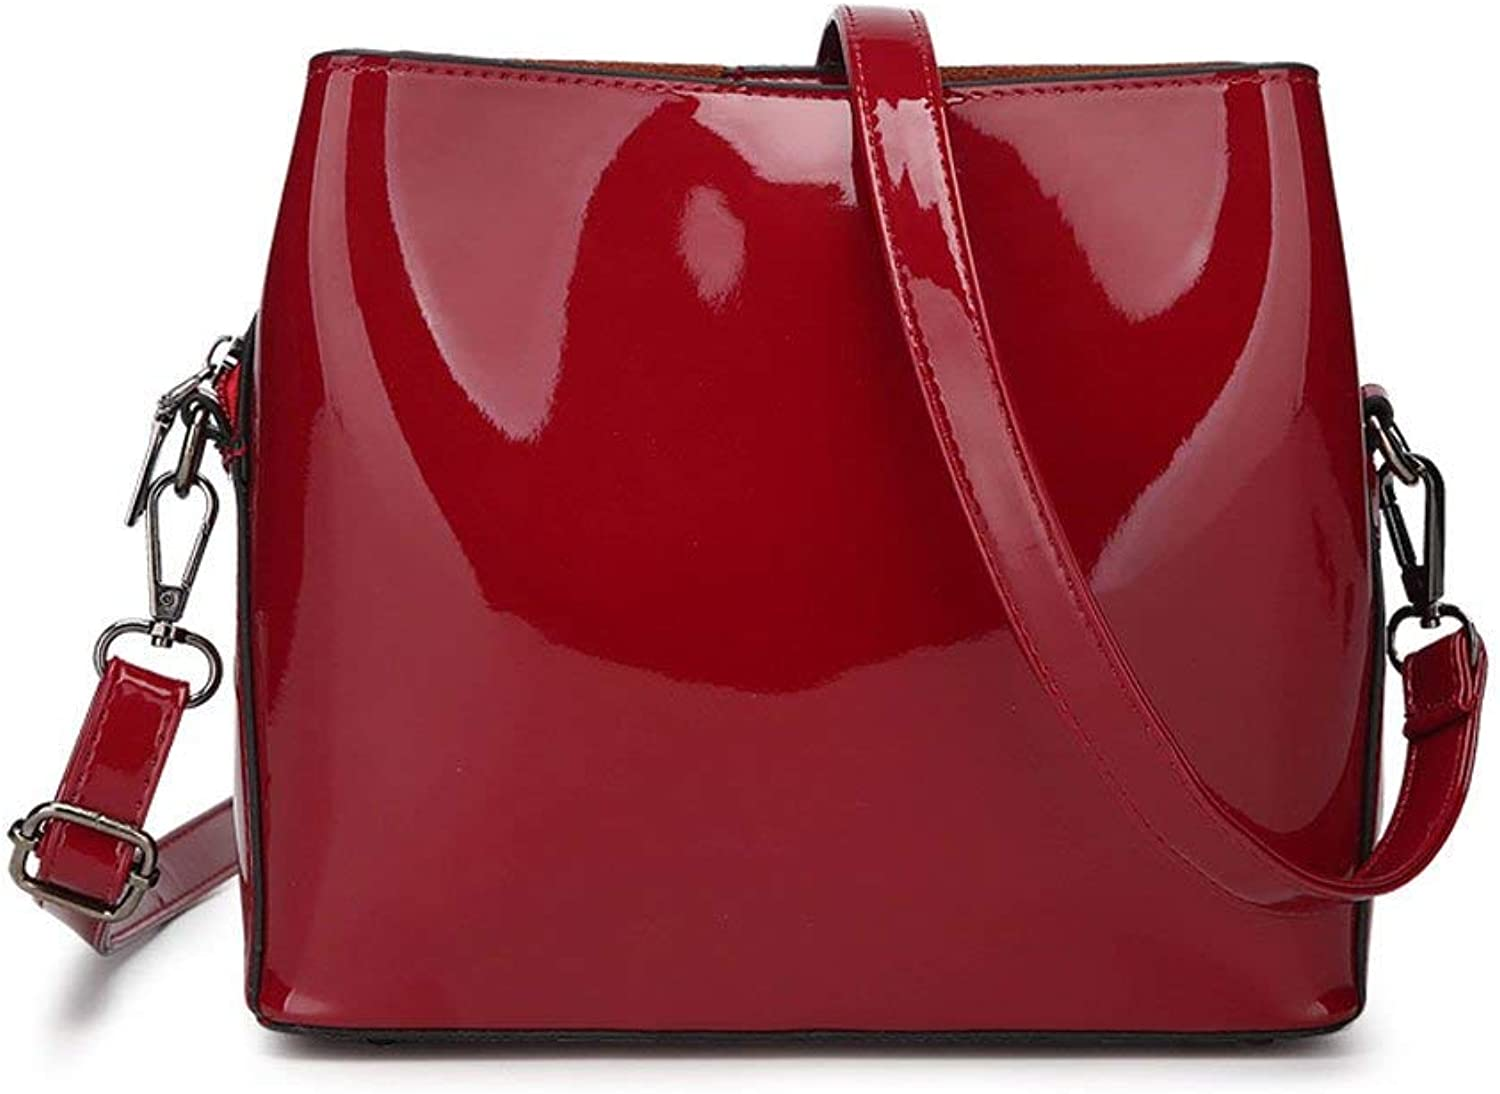 Huasen Evening Bag Lady Bags Fashion Patent Leather Mirror Trend Ms Shoulder Crossbody Packet Simple Temperament Party Handbag (color   Red)